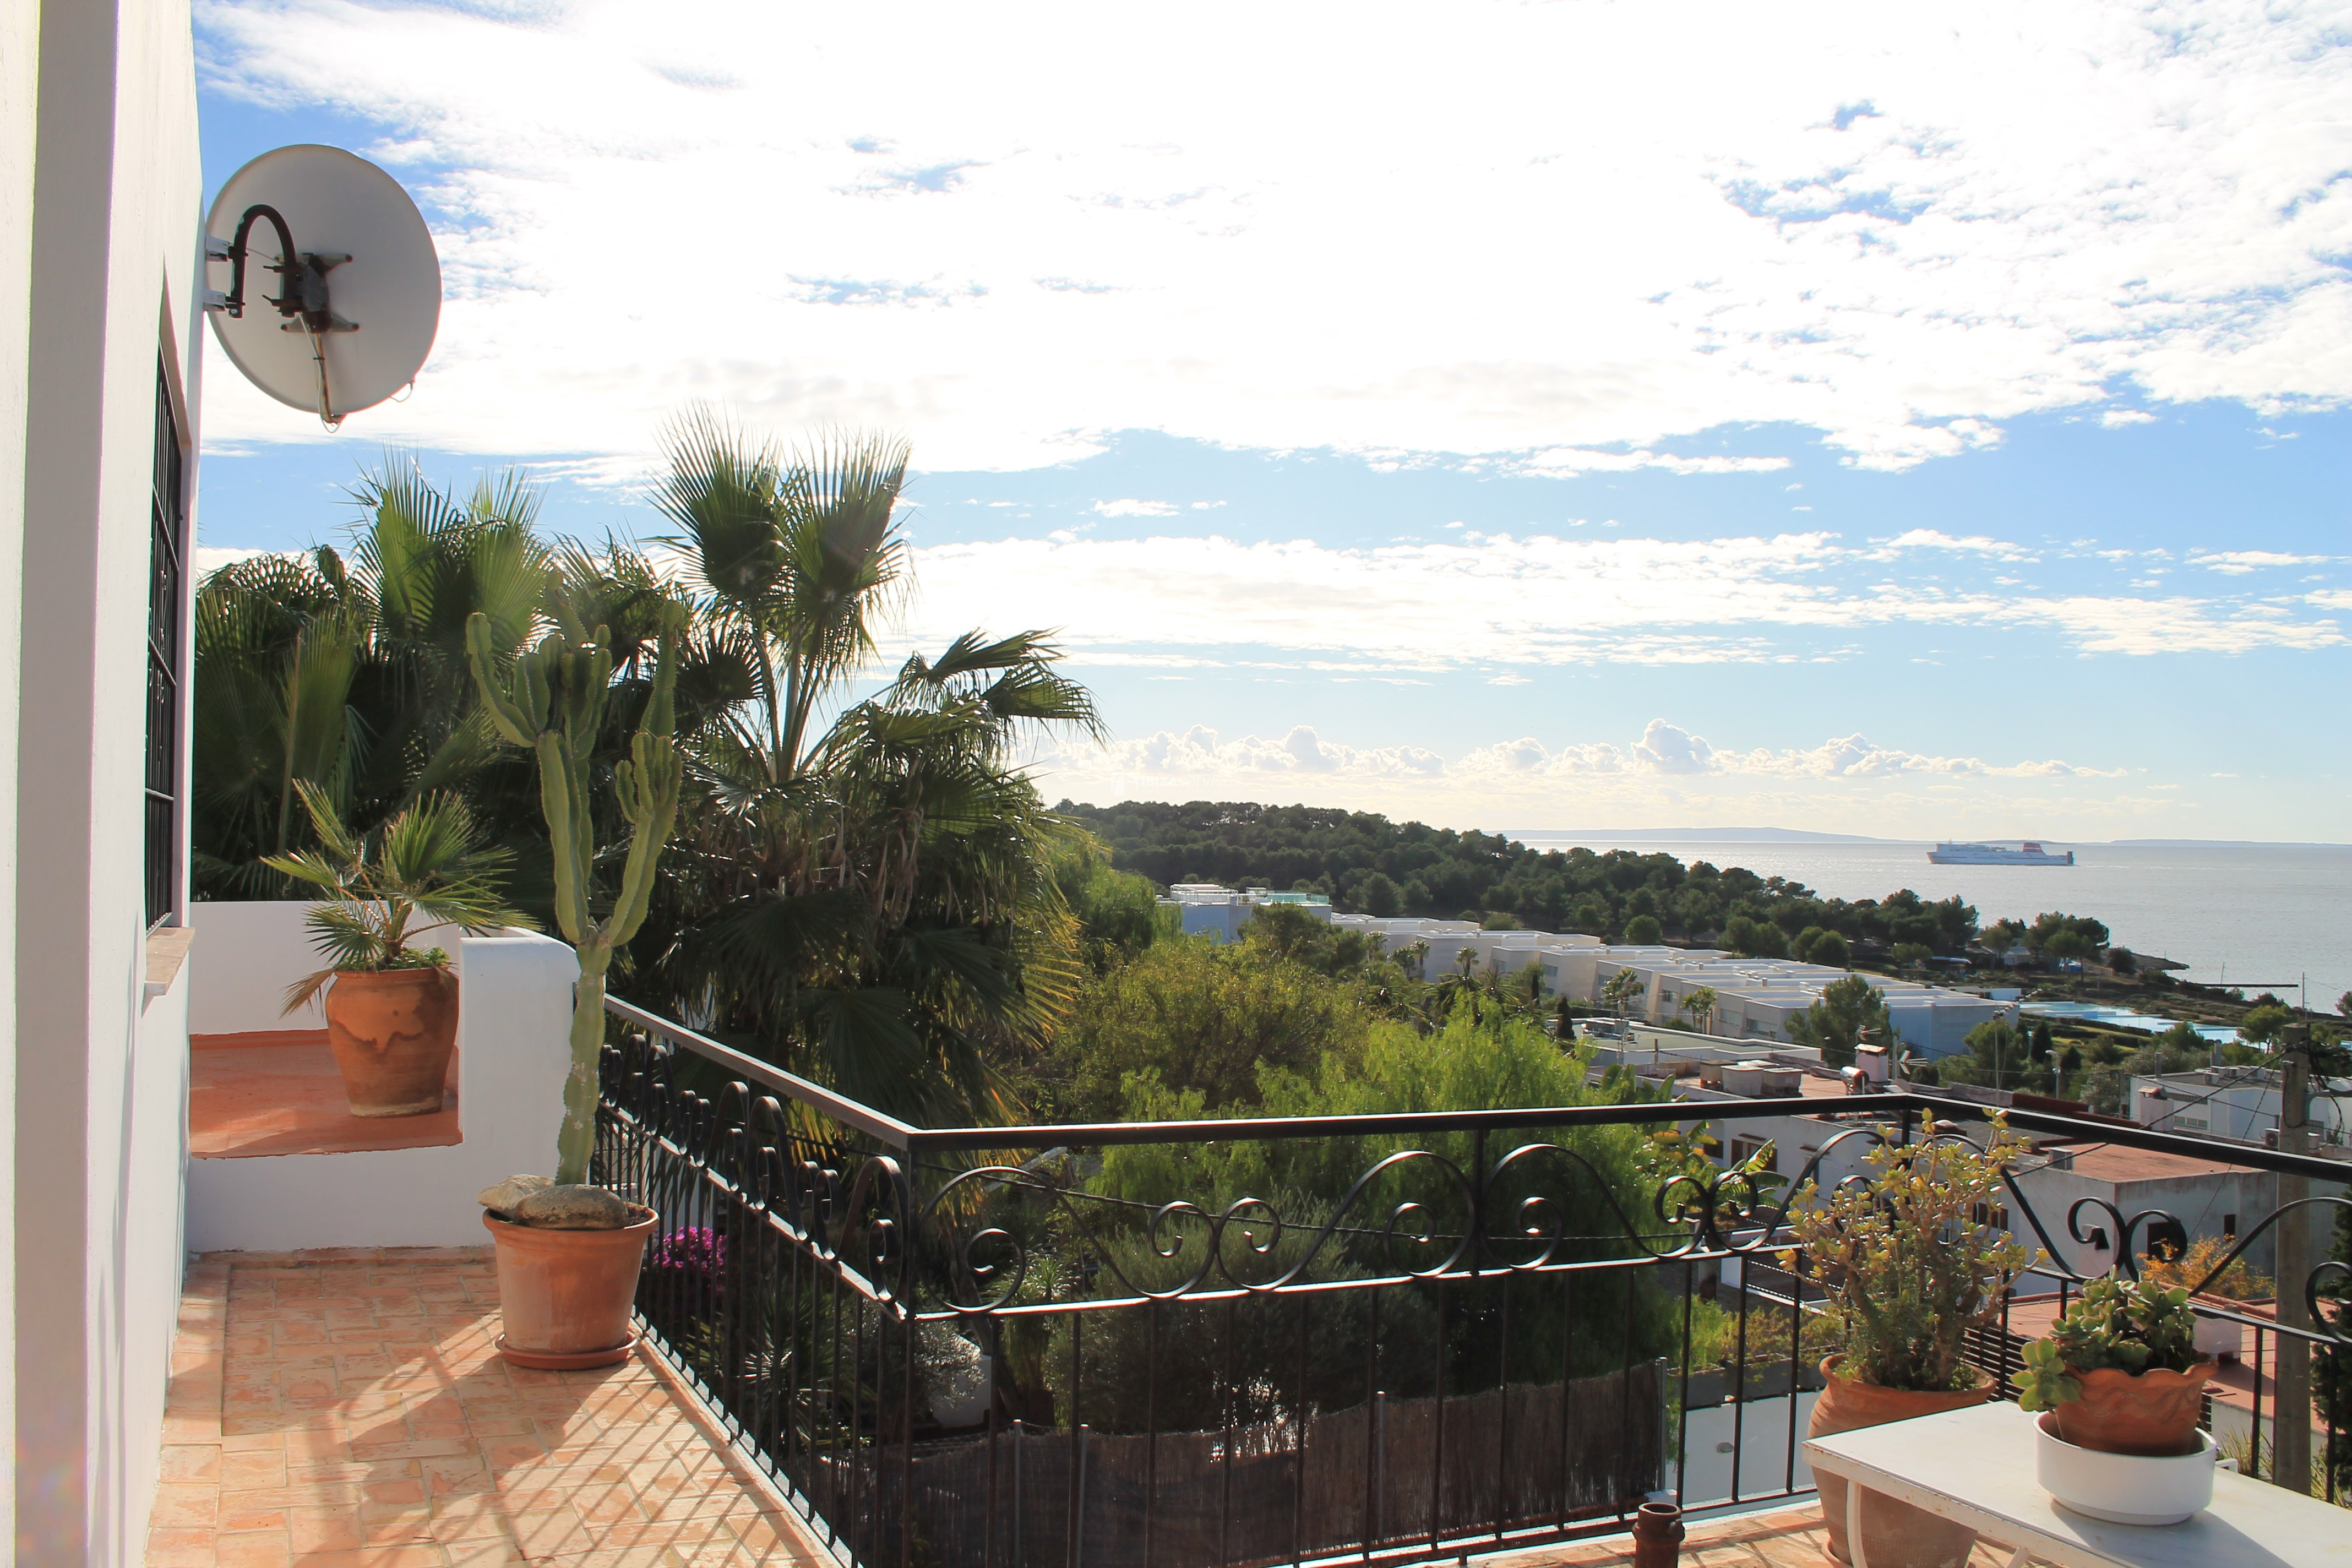 Rent house Ibiza Talamanca for the season perspectiva 1